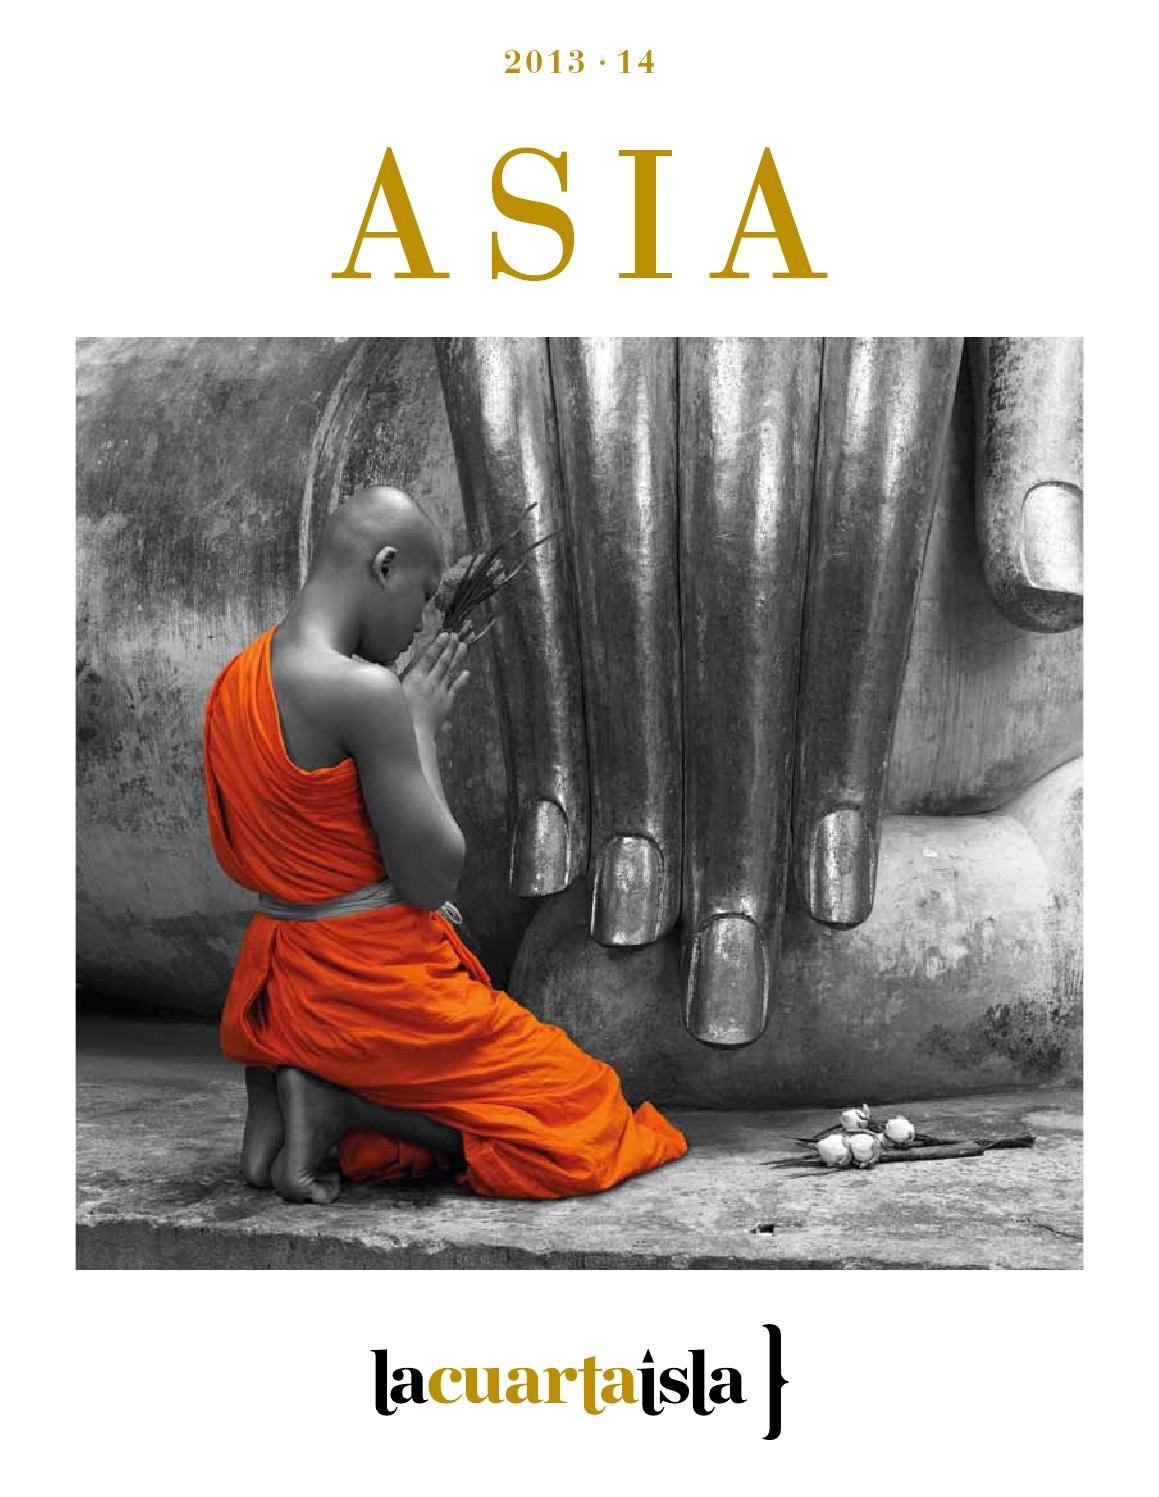 Asia v13 by Travelsens - issuu d1630a059fa9